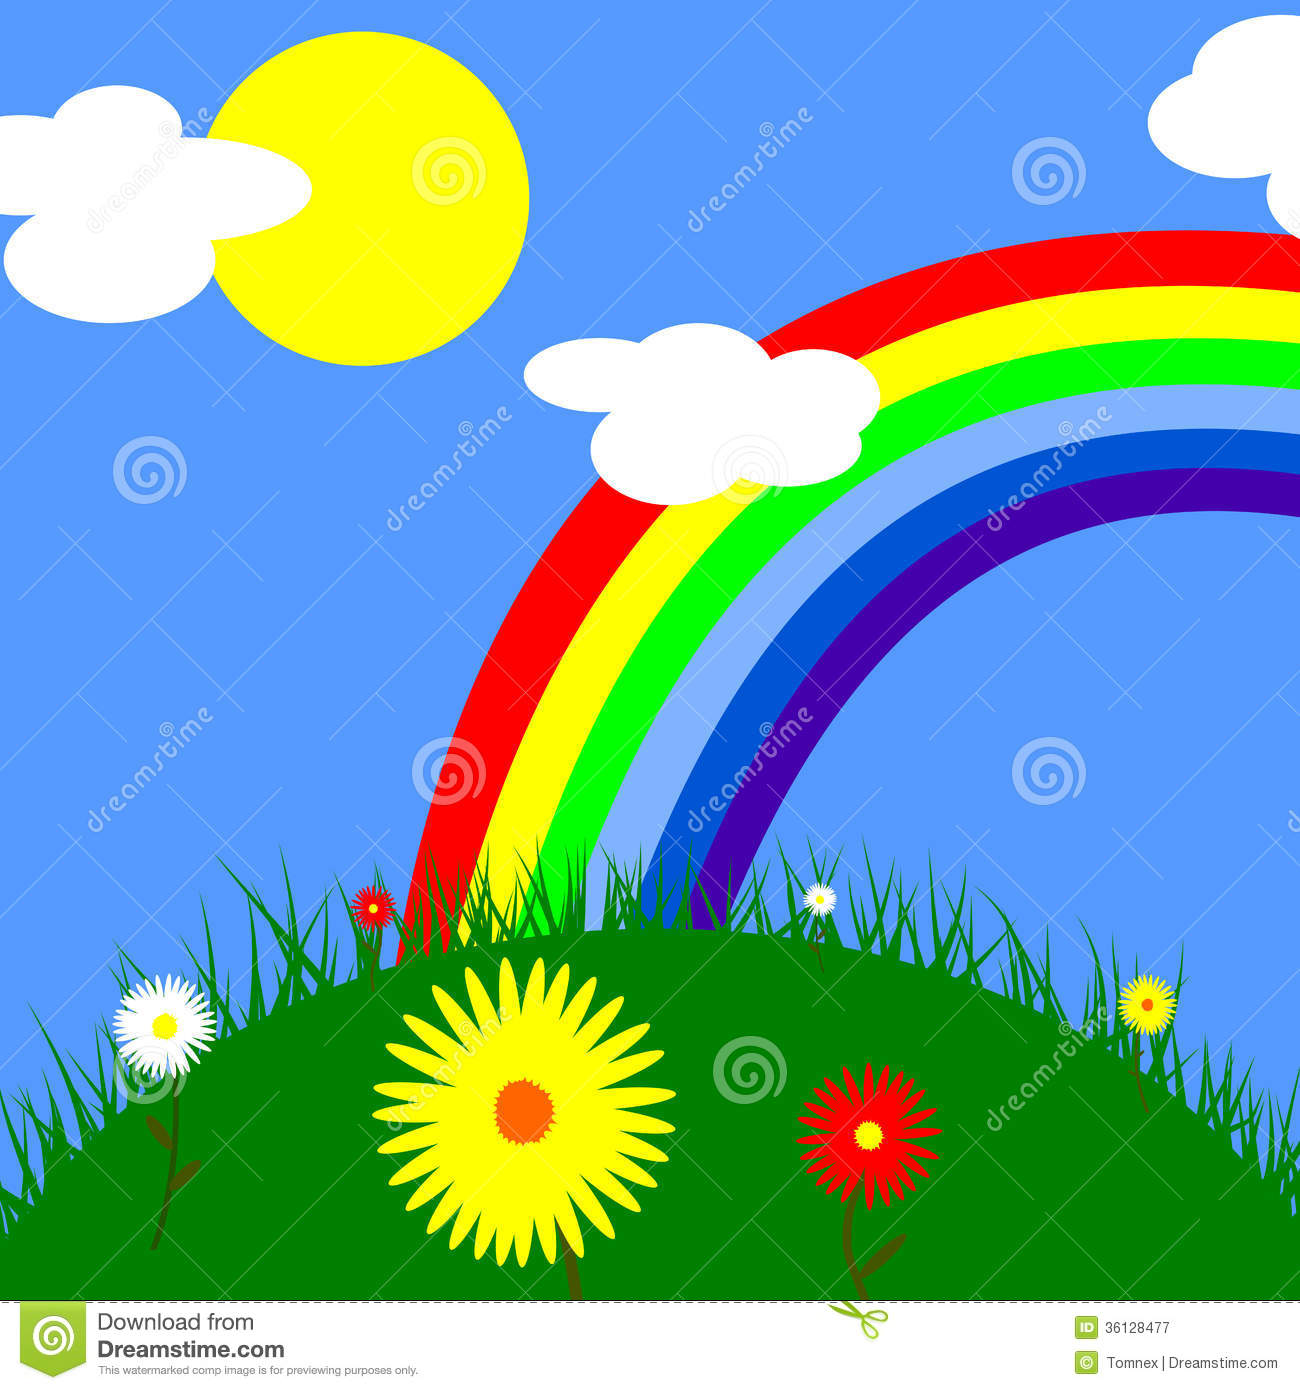 spring weather clipart - photo #3